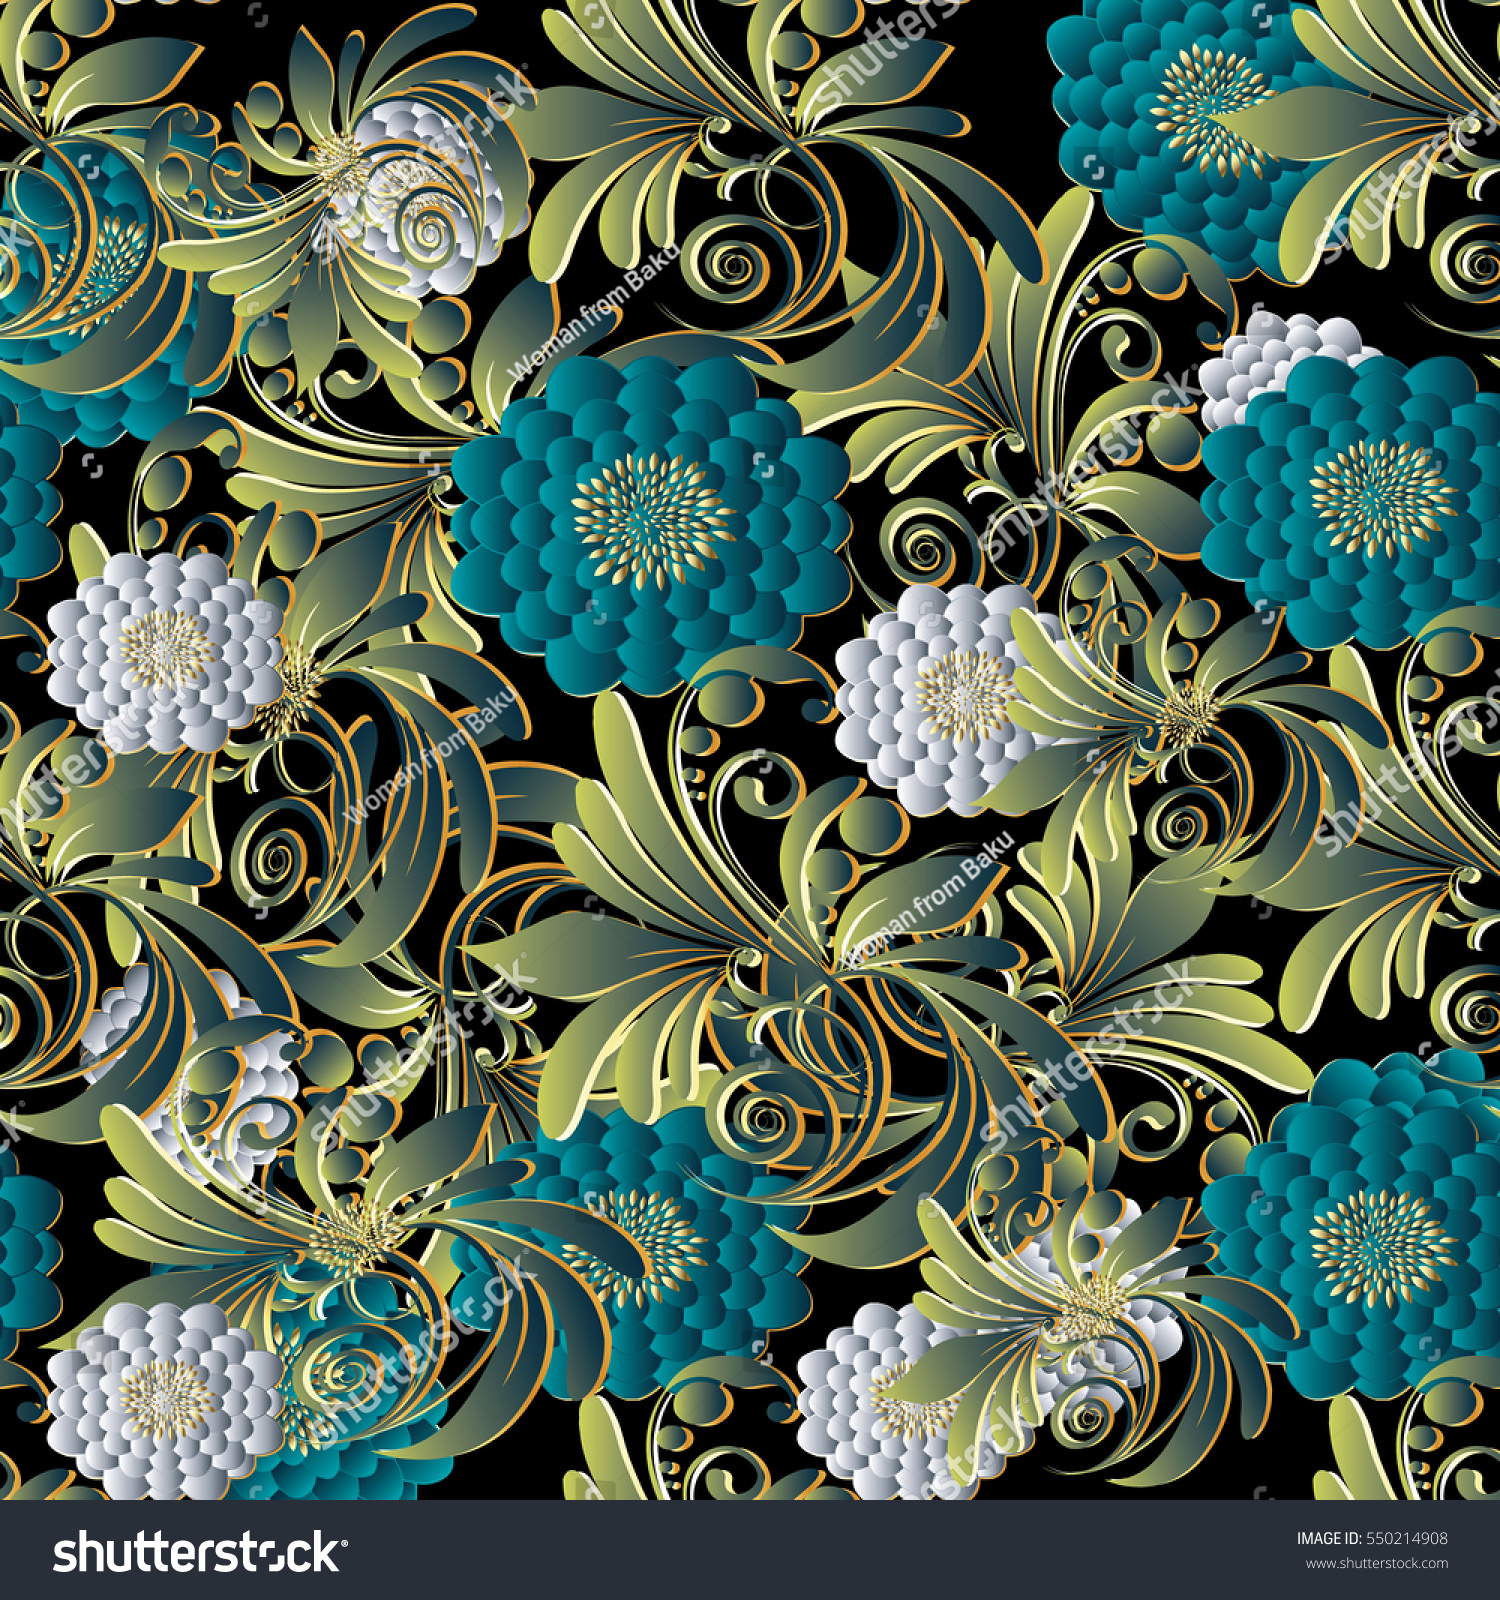 Bright Modern Floral 3d Seamless Pattern Background Wallpaper Illustration With Vintage Decorative White And Blue Surface